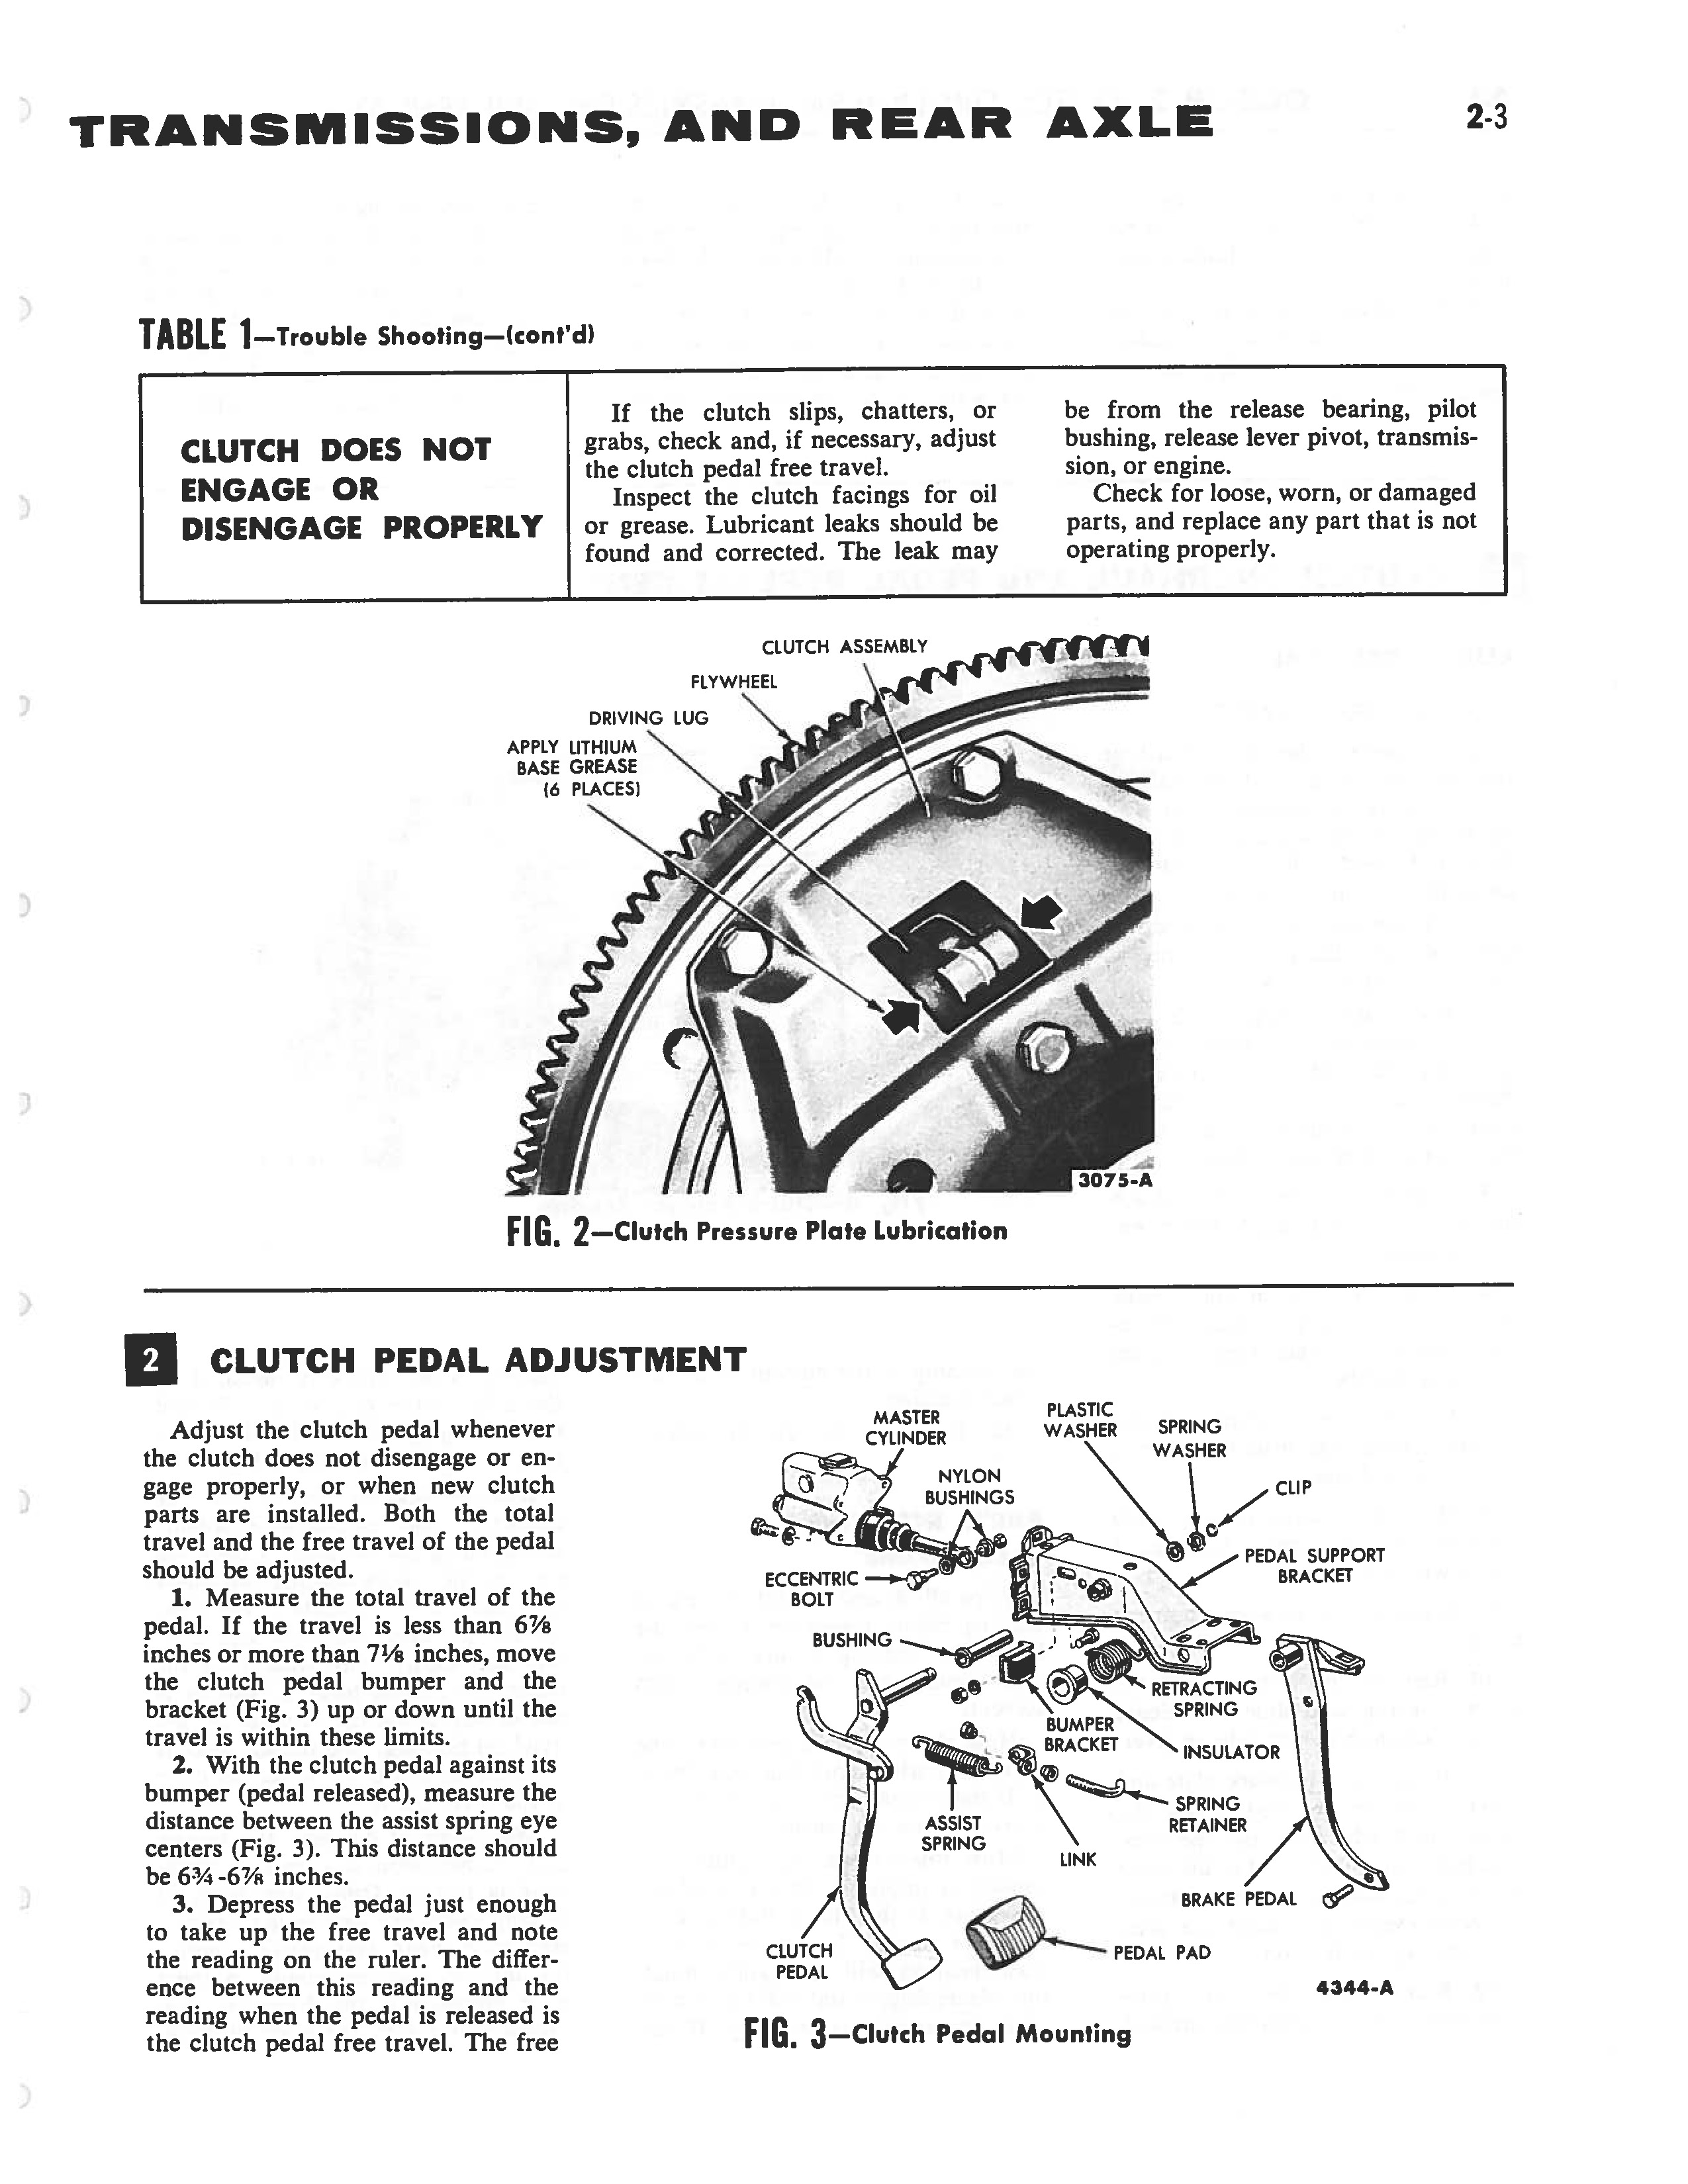 1958 Ford Thunderbird Shop Manual page 89 of 360